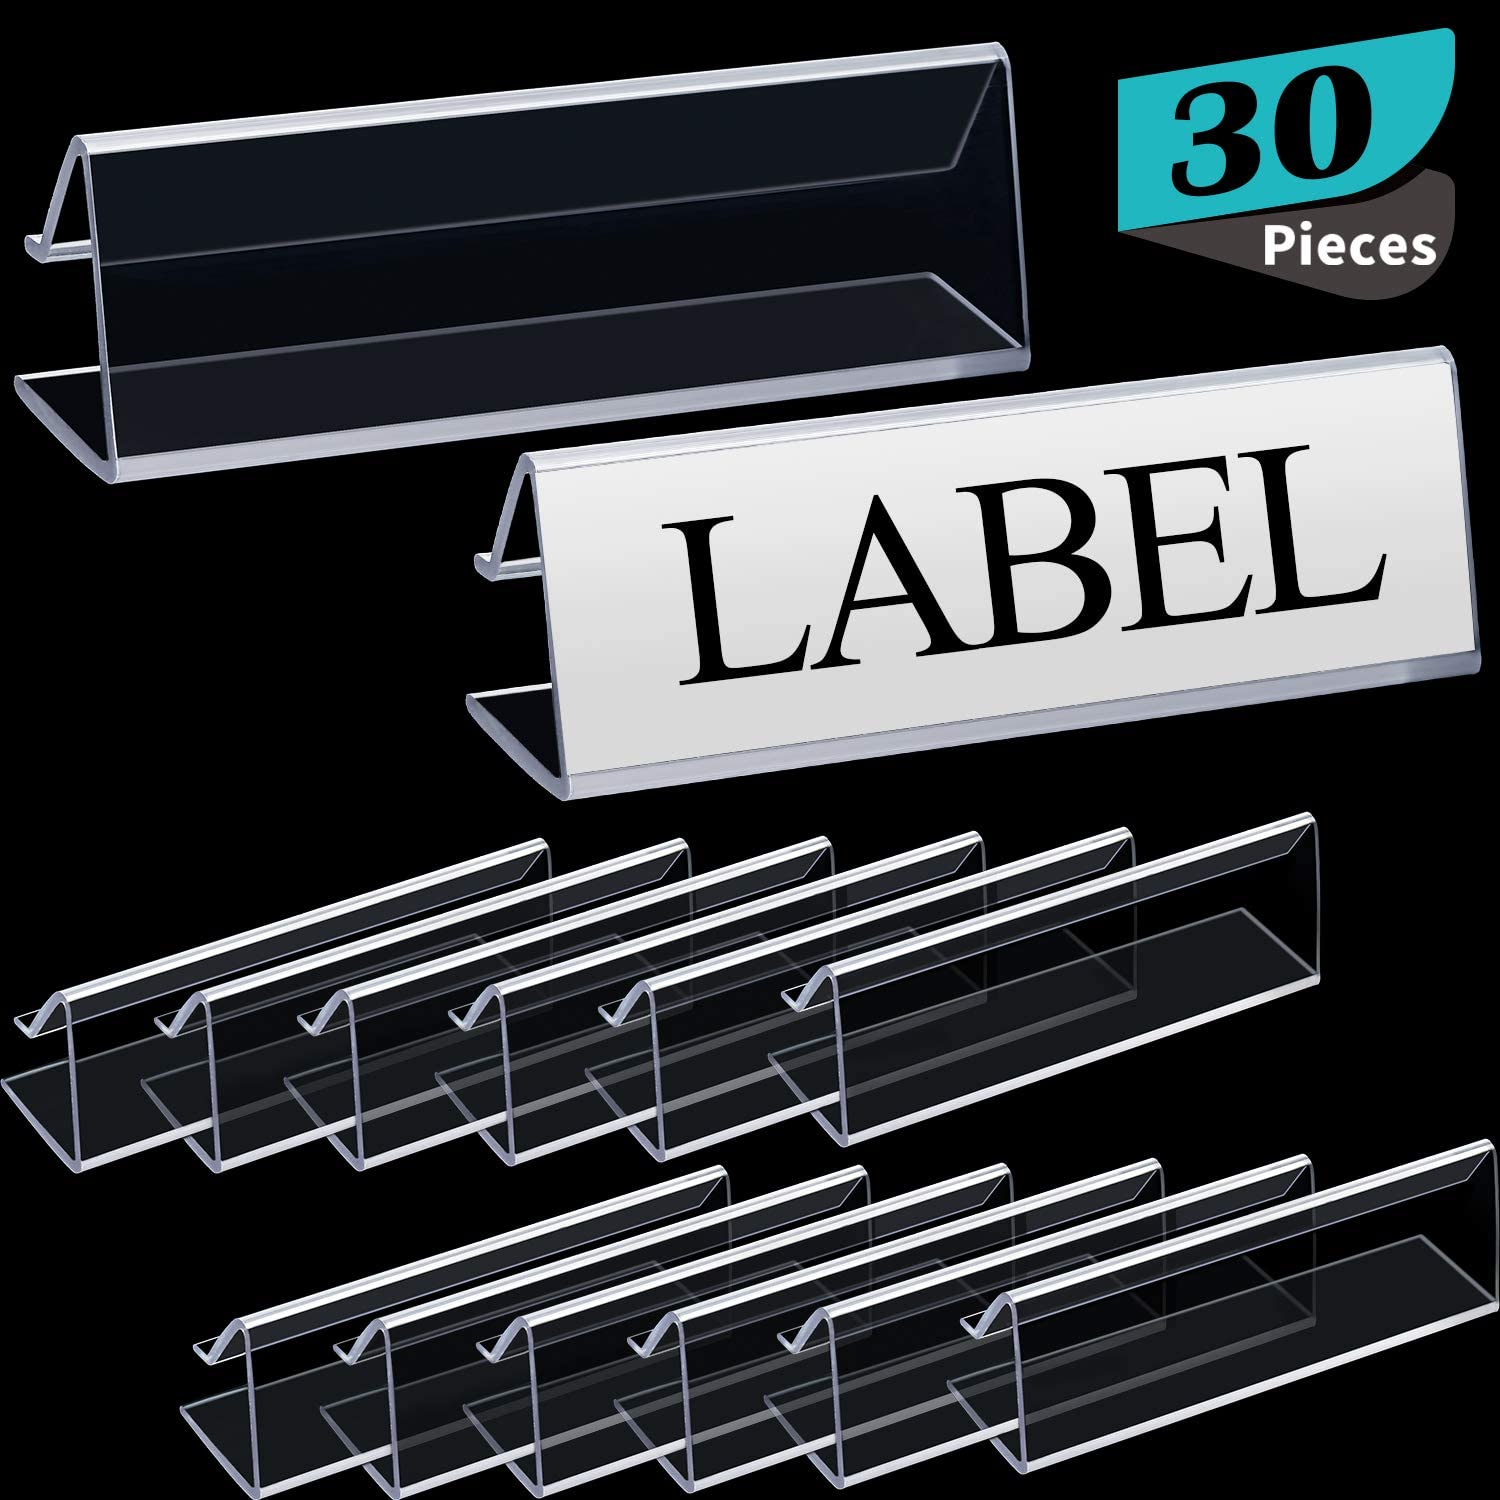 Plastic Label Holder Wire Shelf Label Holder 3 x 7/8 Inches Clip on Tag Holders Ticket Holder Fit for Shelves 5/8 Inch to 3/4 Inch Thick(30 Pieces)